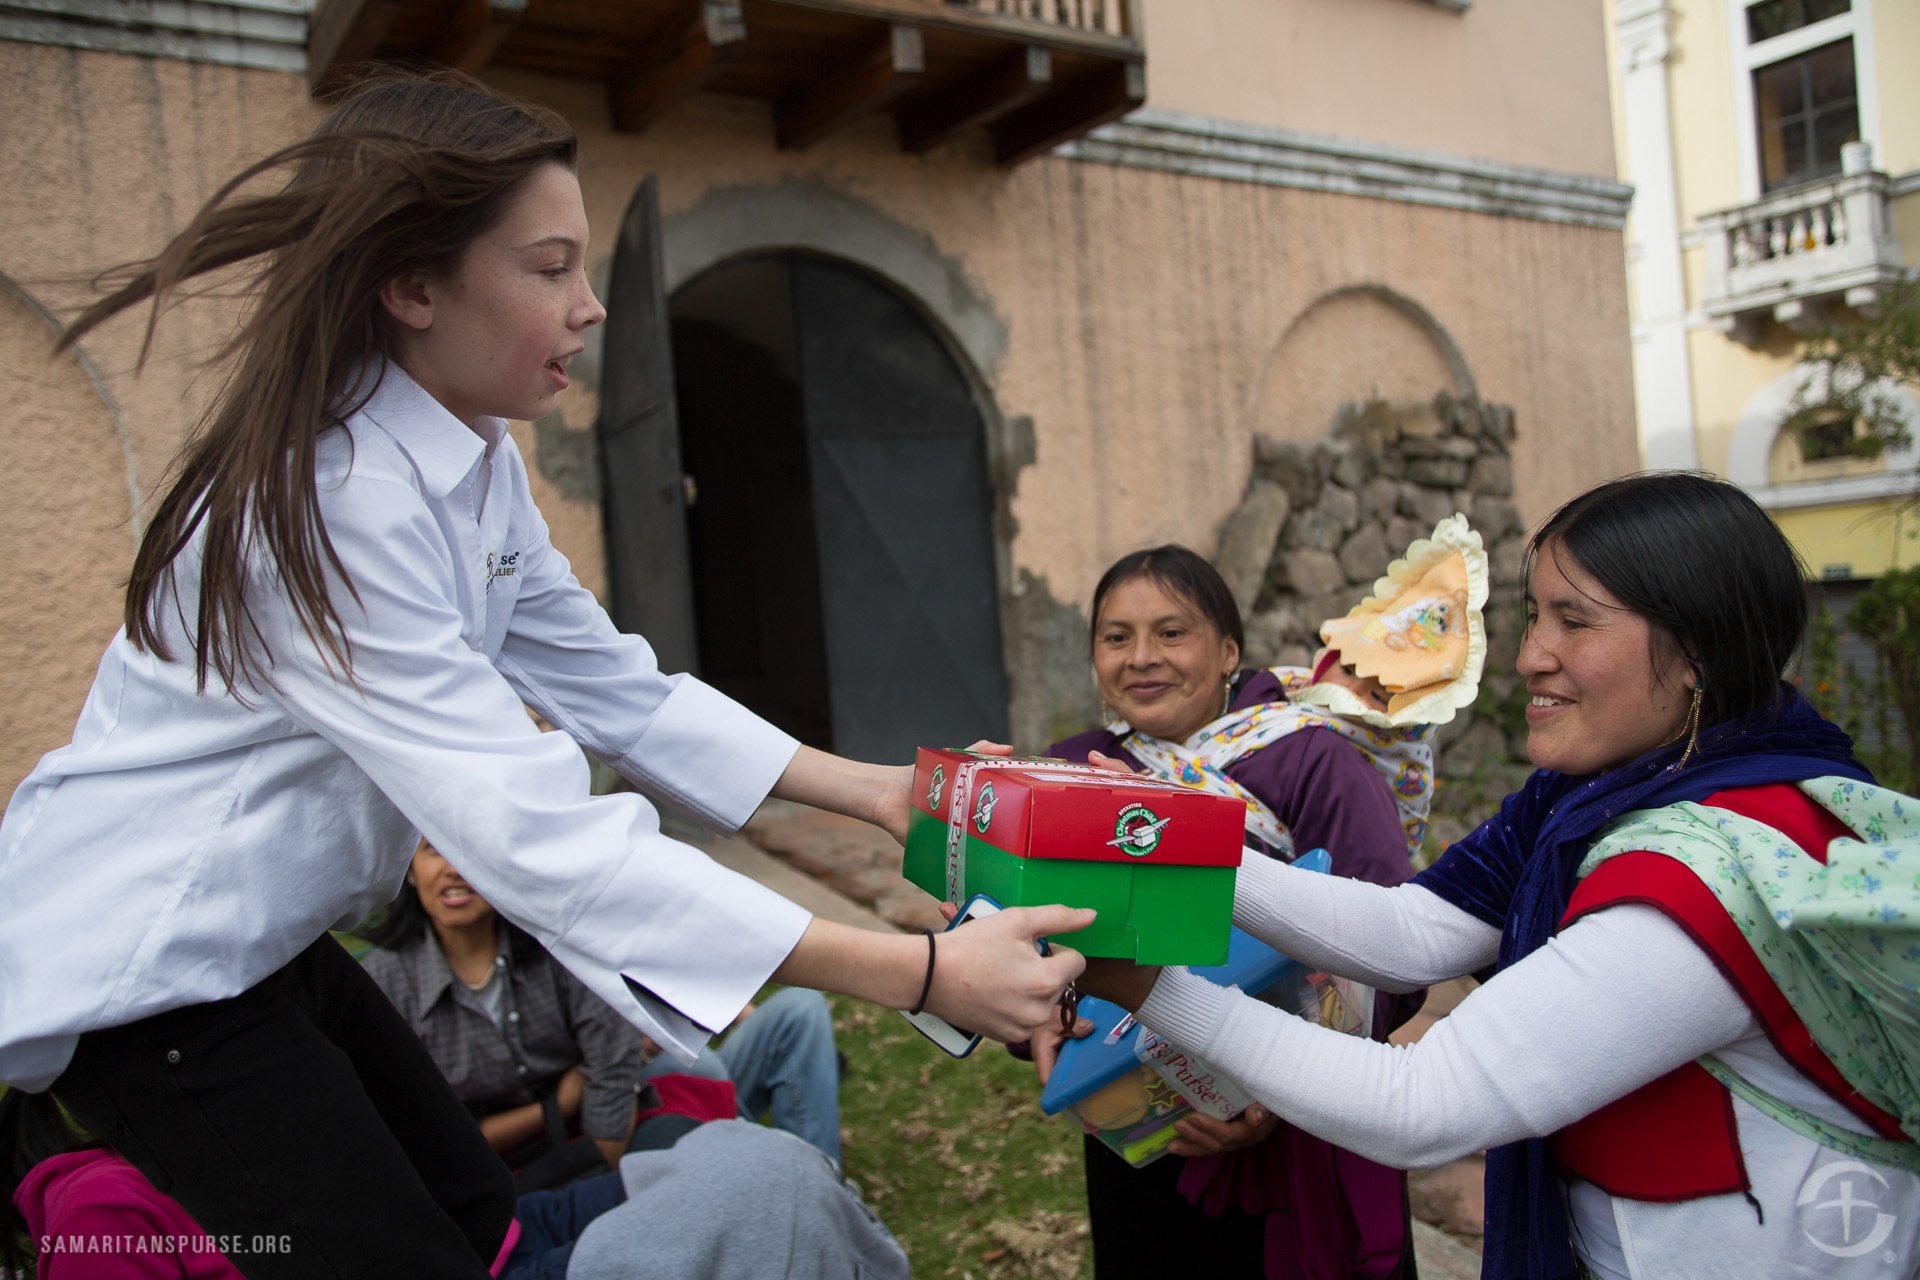 C.J. Graham gives gifts to mothers of young girls.